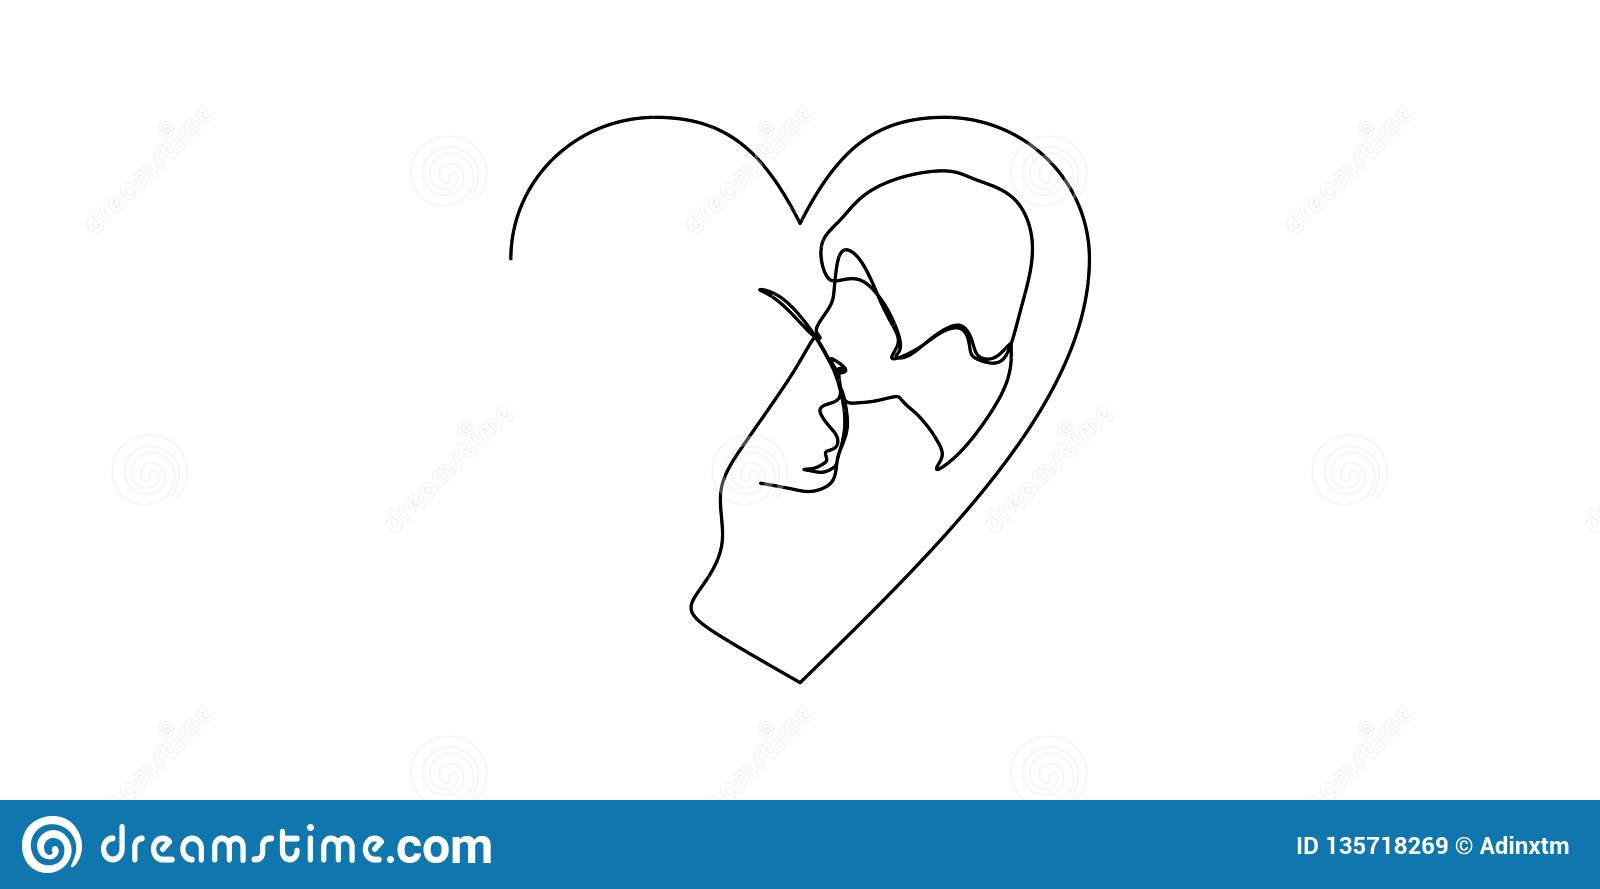 Continuous one line drawn single drawing of romantic kiss of